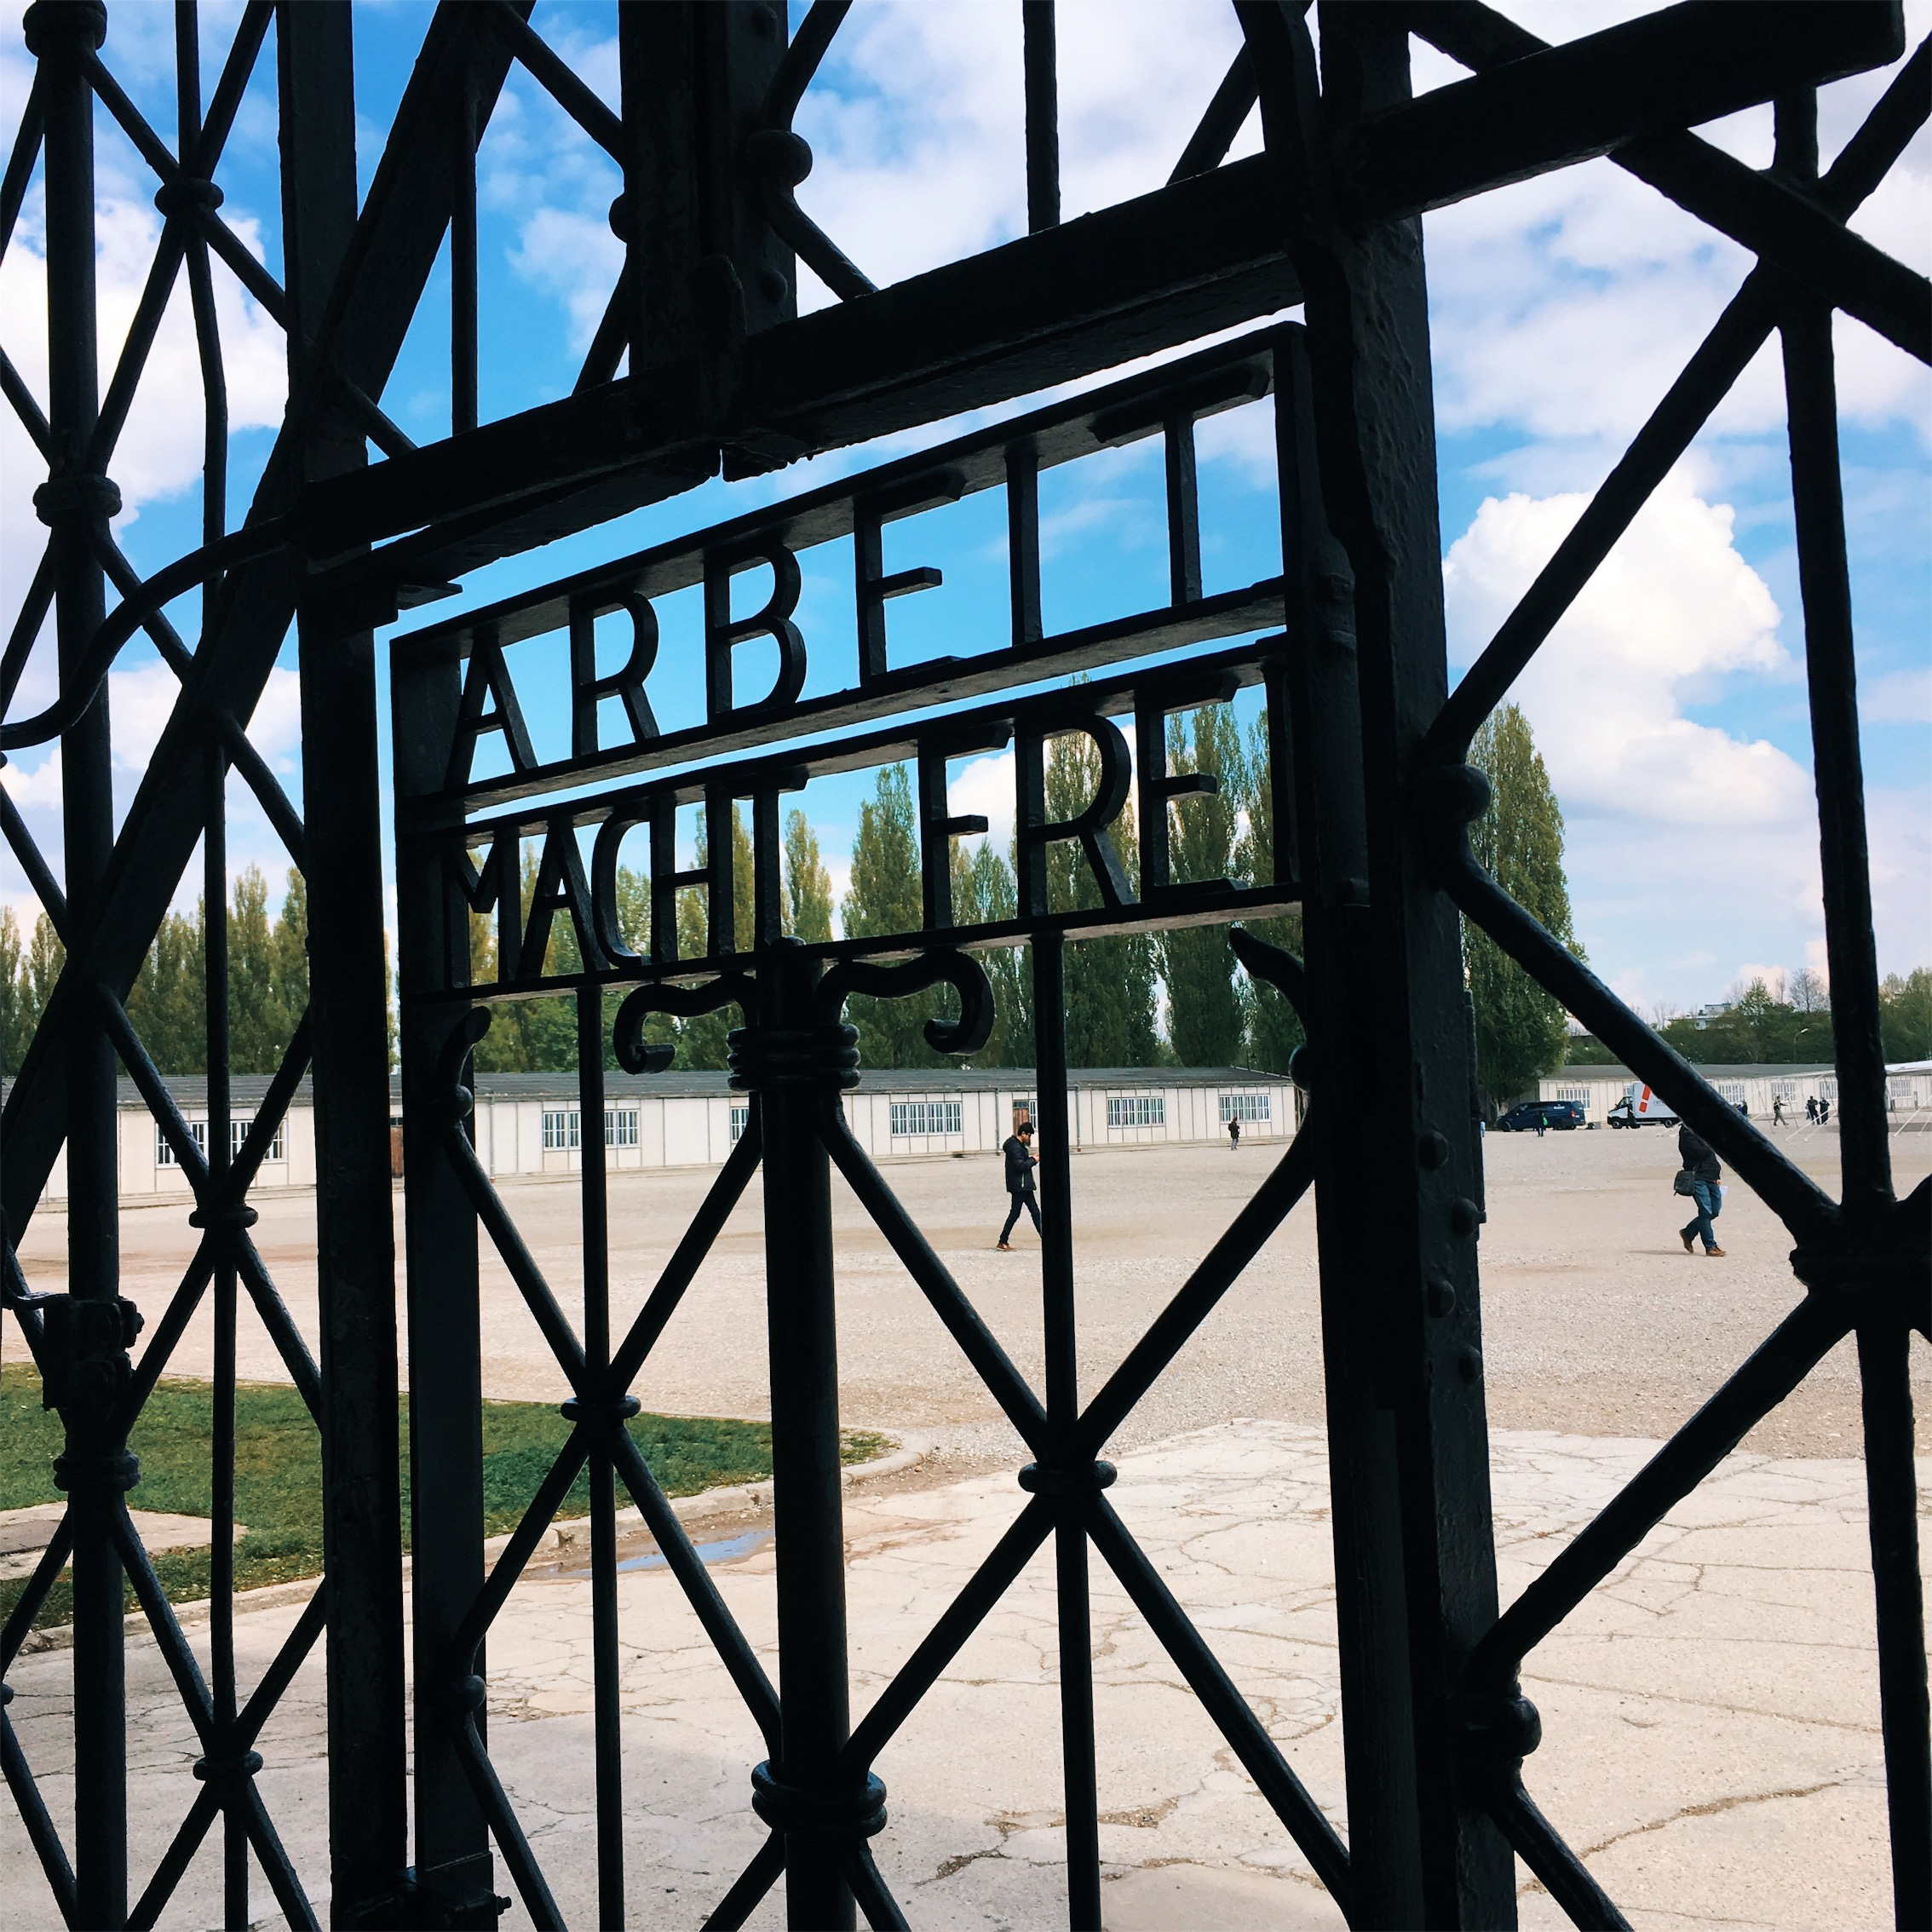 When visiting Munich, a day trip to the  Dachau Concentration Camp  is a must. It's worth it to go with a guide like Maxine who can explain the history.